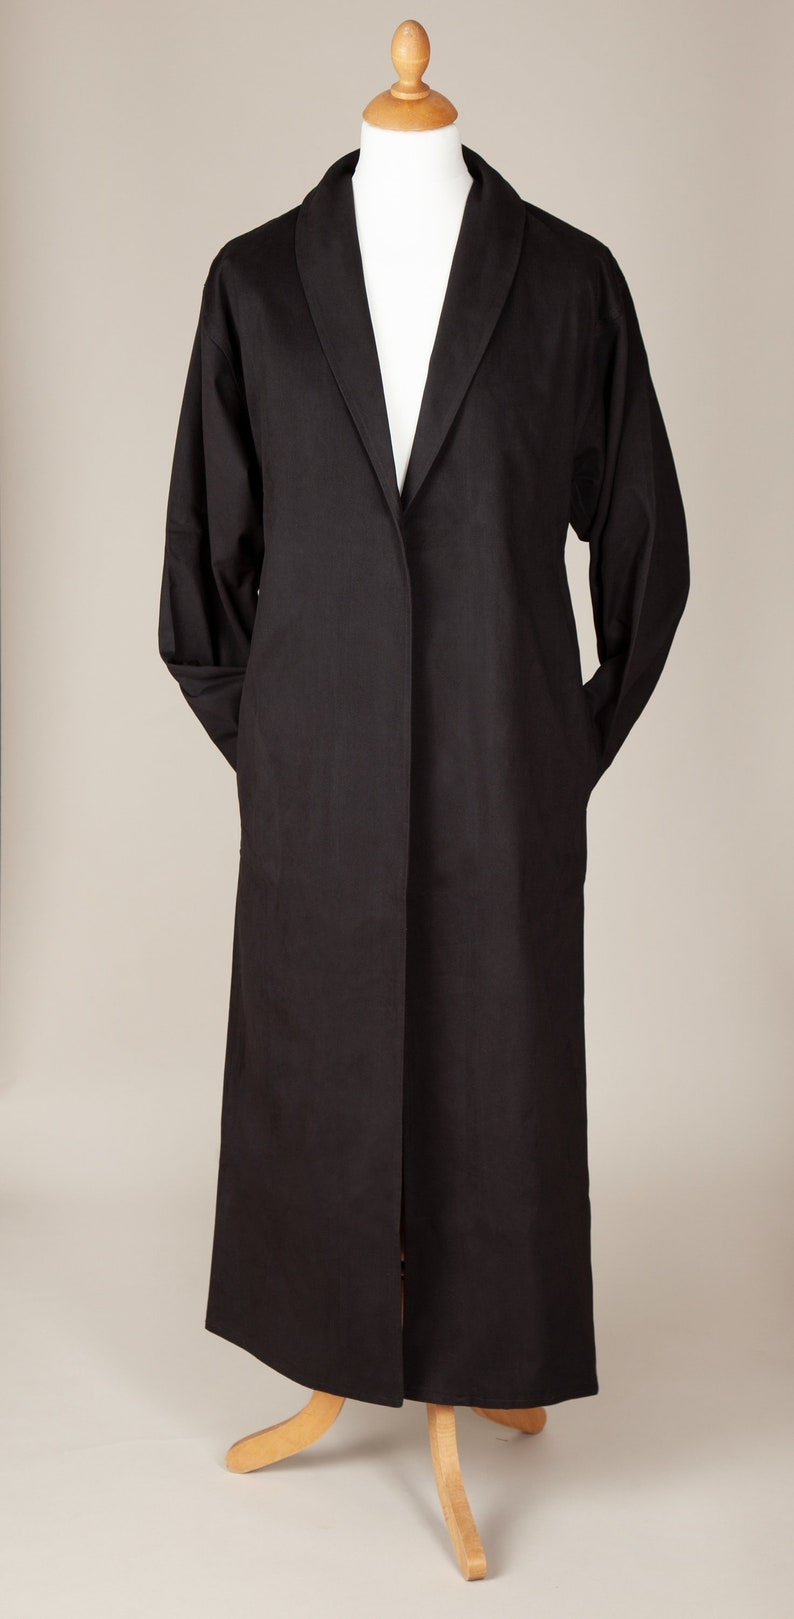 Men's Steampunk Costume Essentials Classic Black Drill Duster Coat $79.95 AT vintagedancer.com